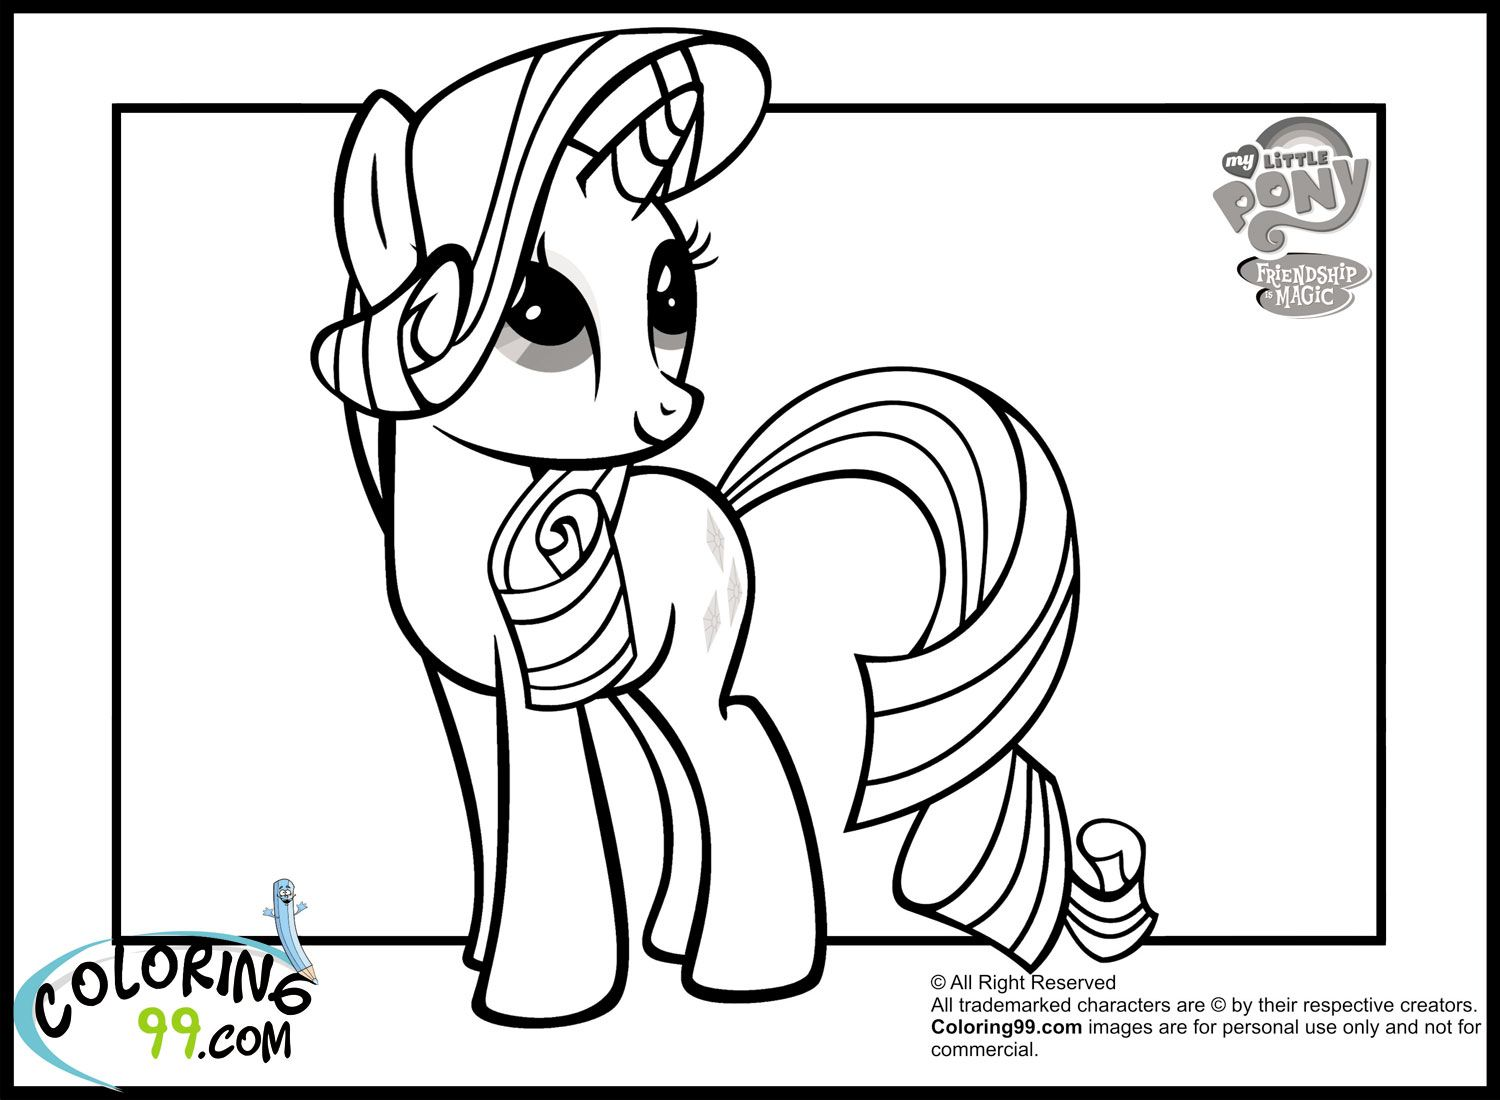 Rarity Coloring Page | My Little Pony Friendship is Magic ...